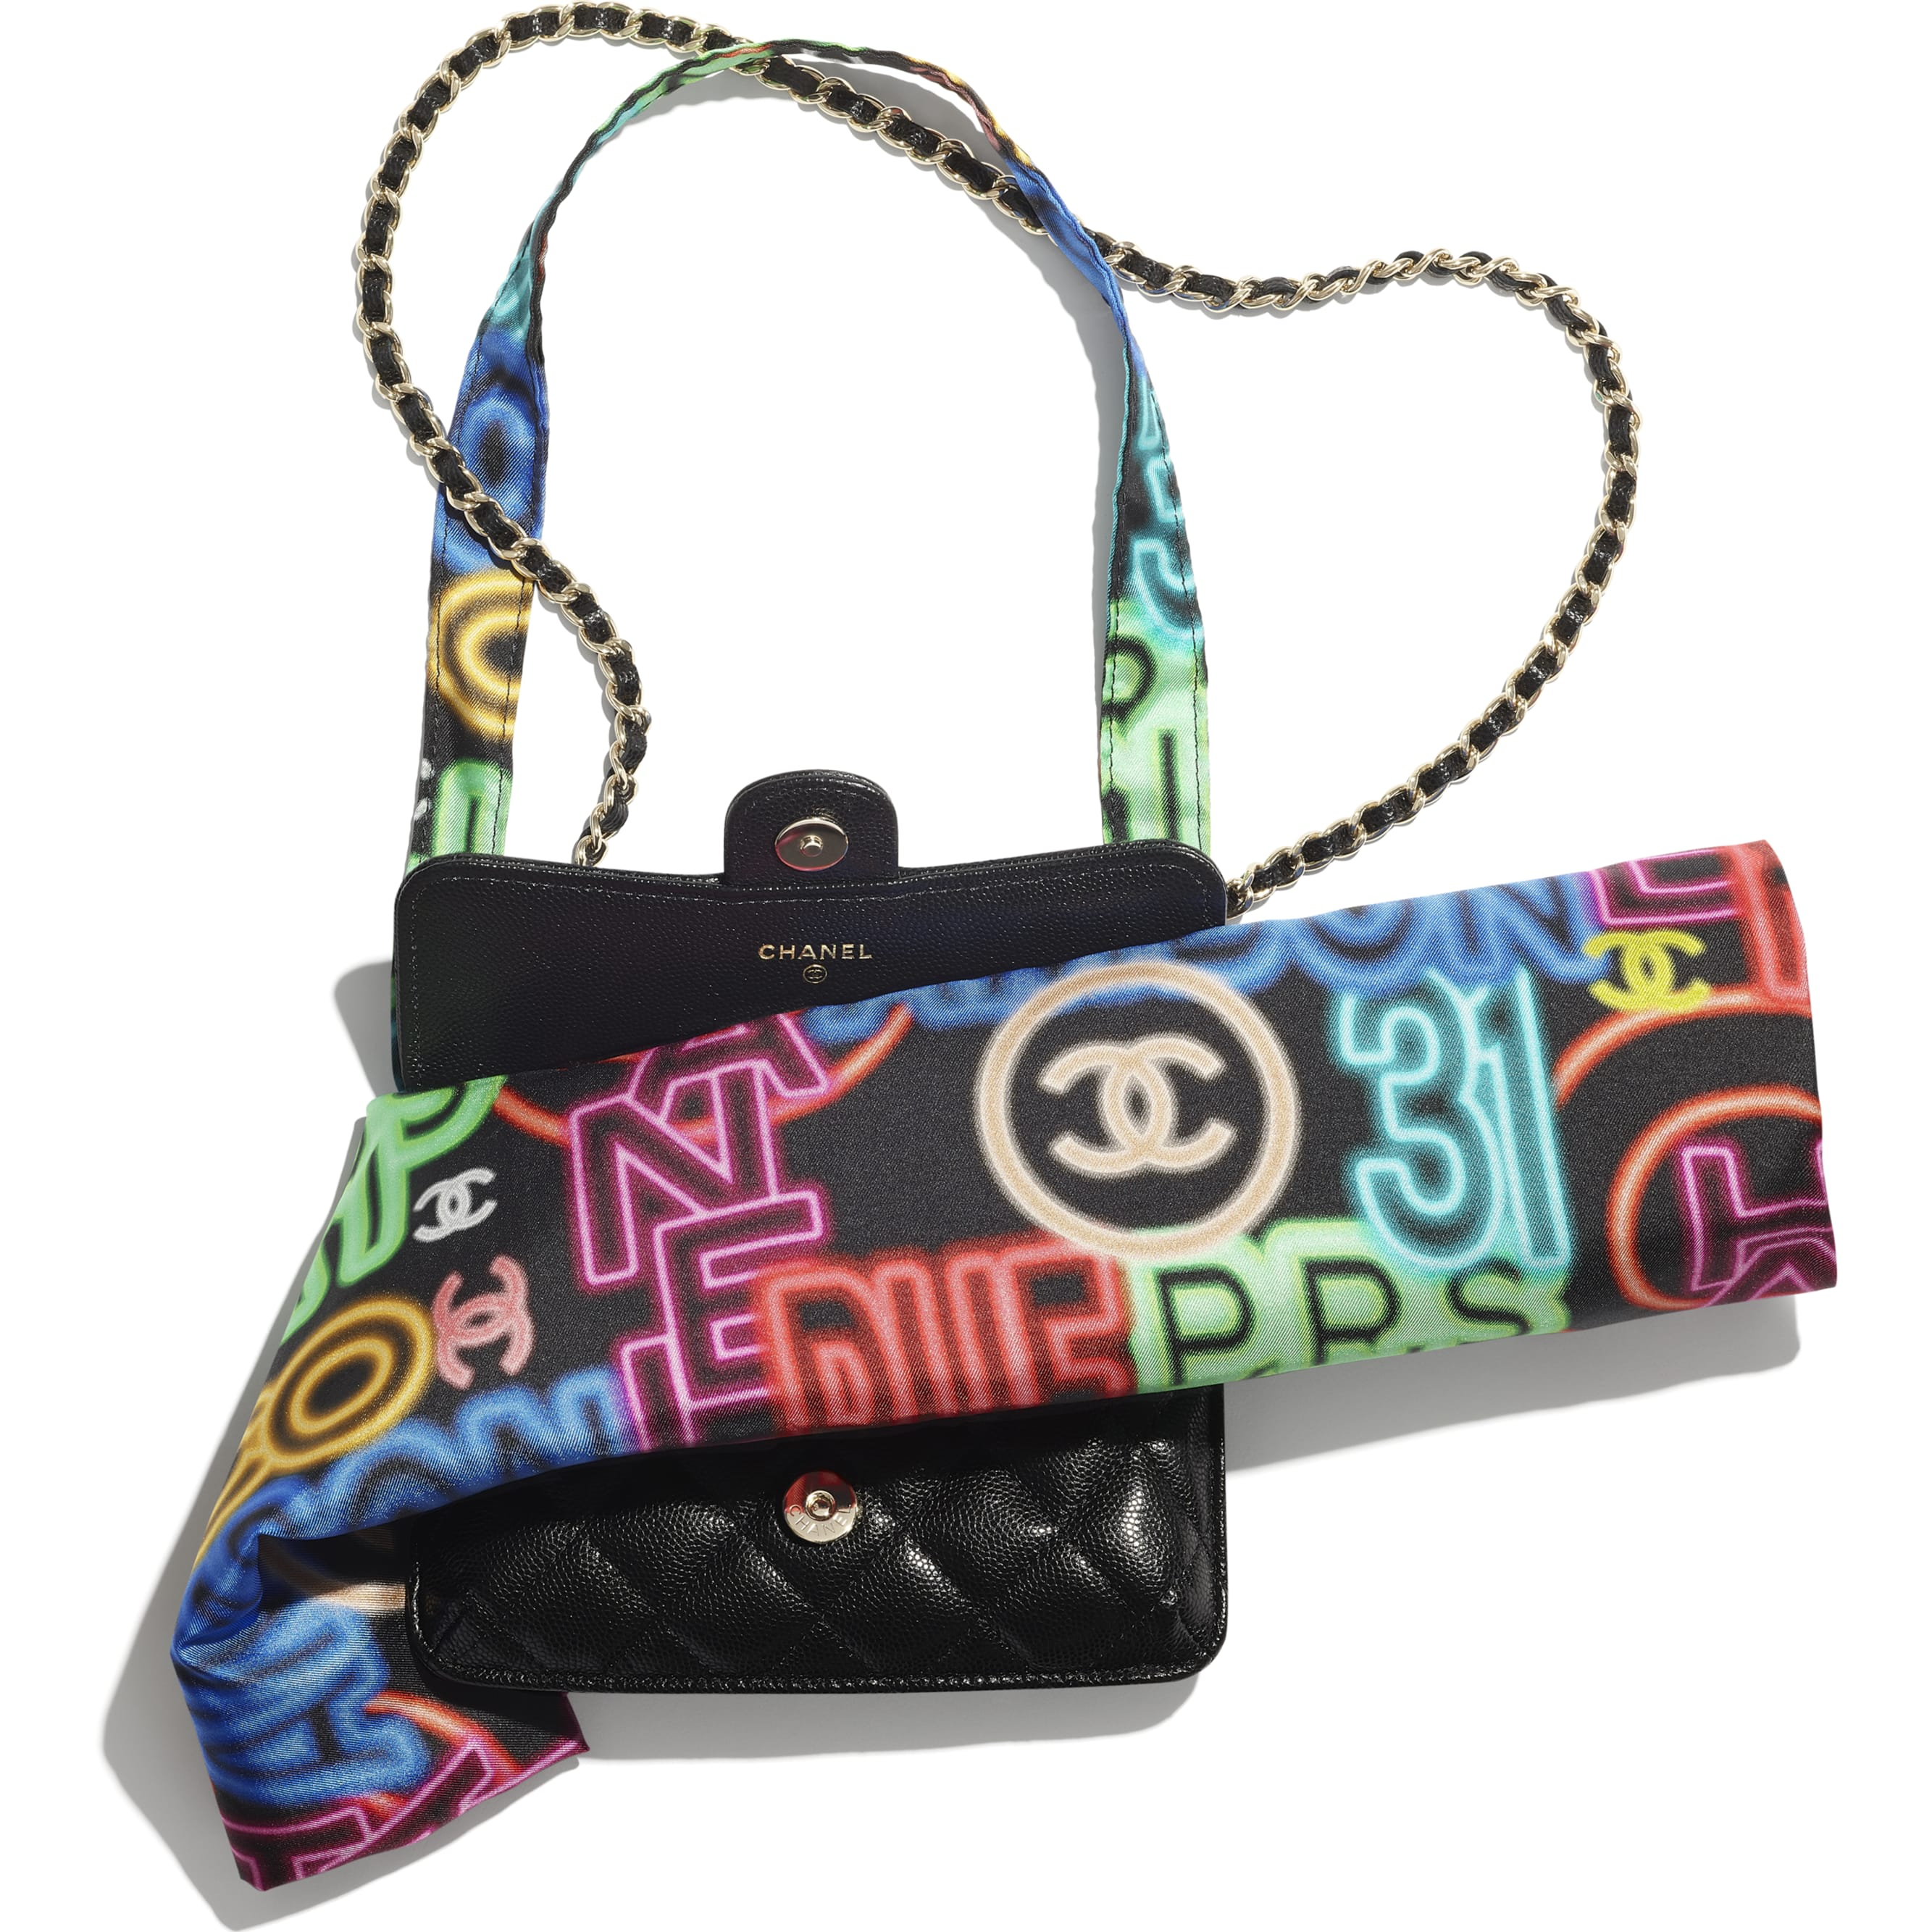 Foldable Tote Bag with Chain - Black & Multicolor - Printed Fabric, Grained Calfskin & Gold-Tone Metal - CHANEL - Alternative view - see standard sized version